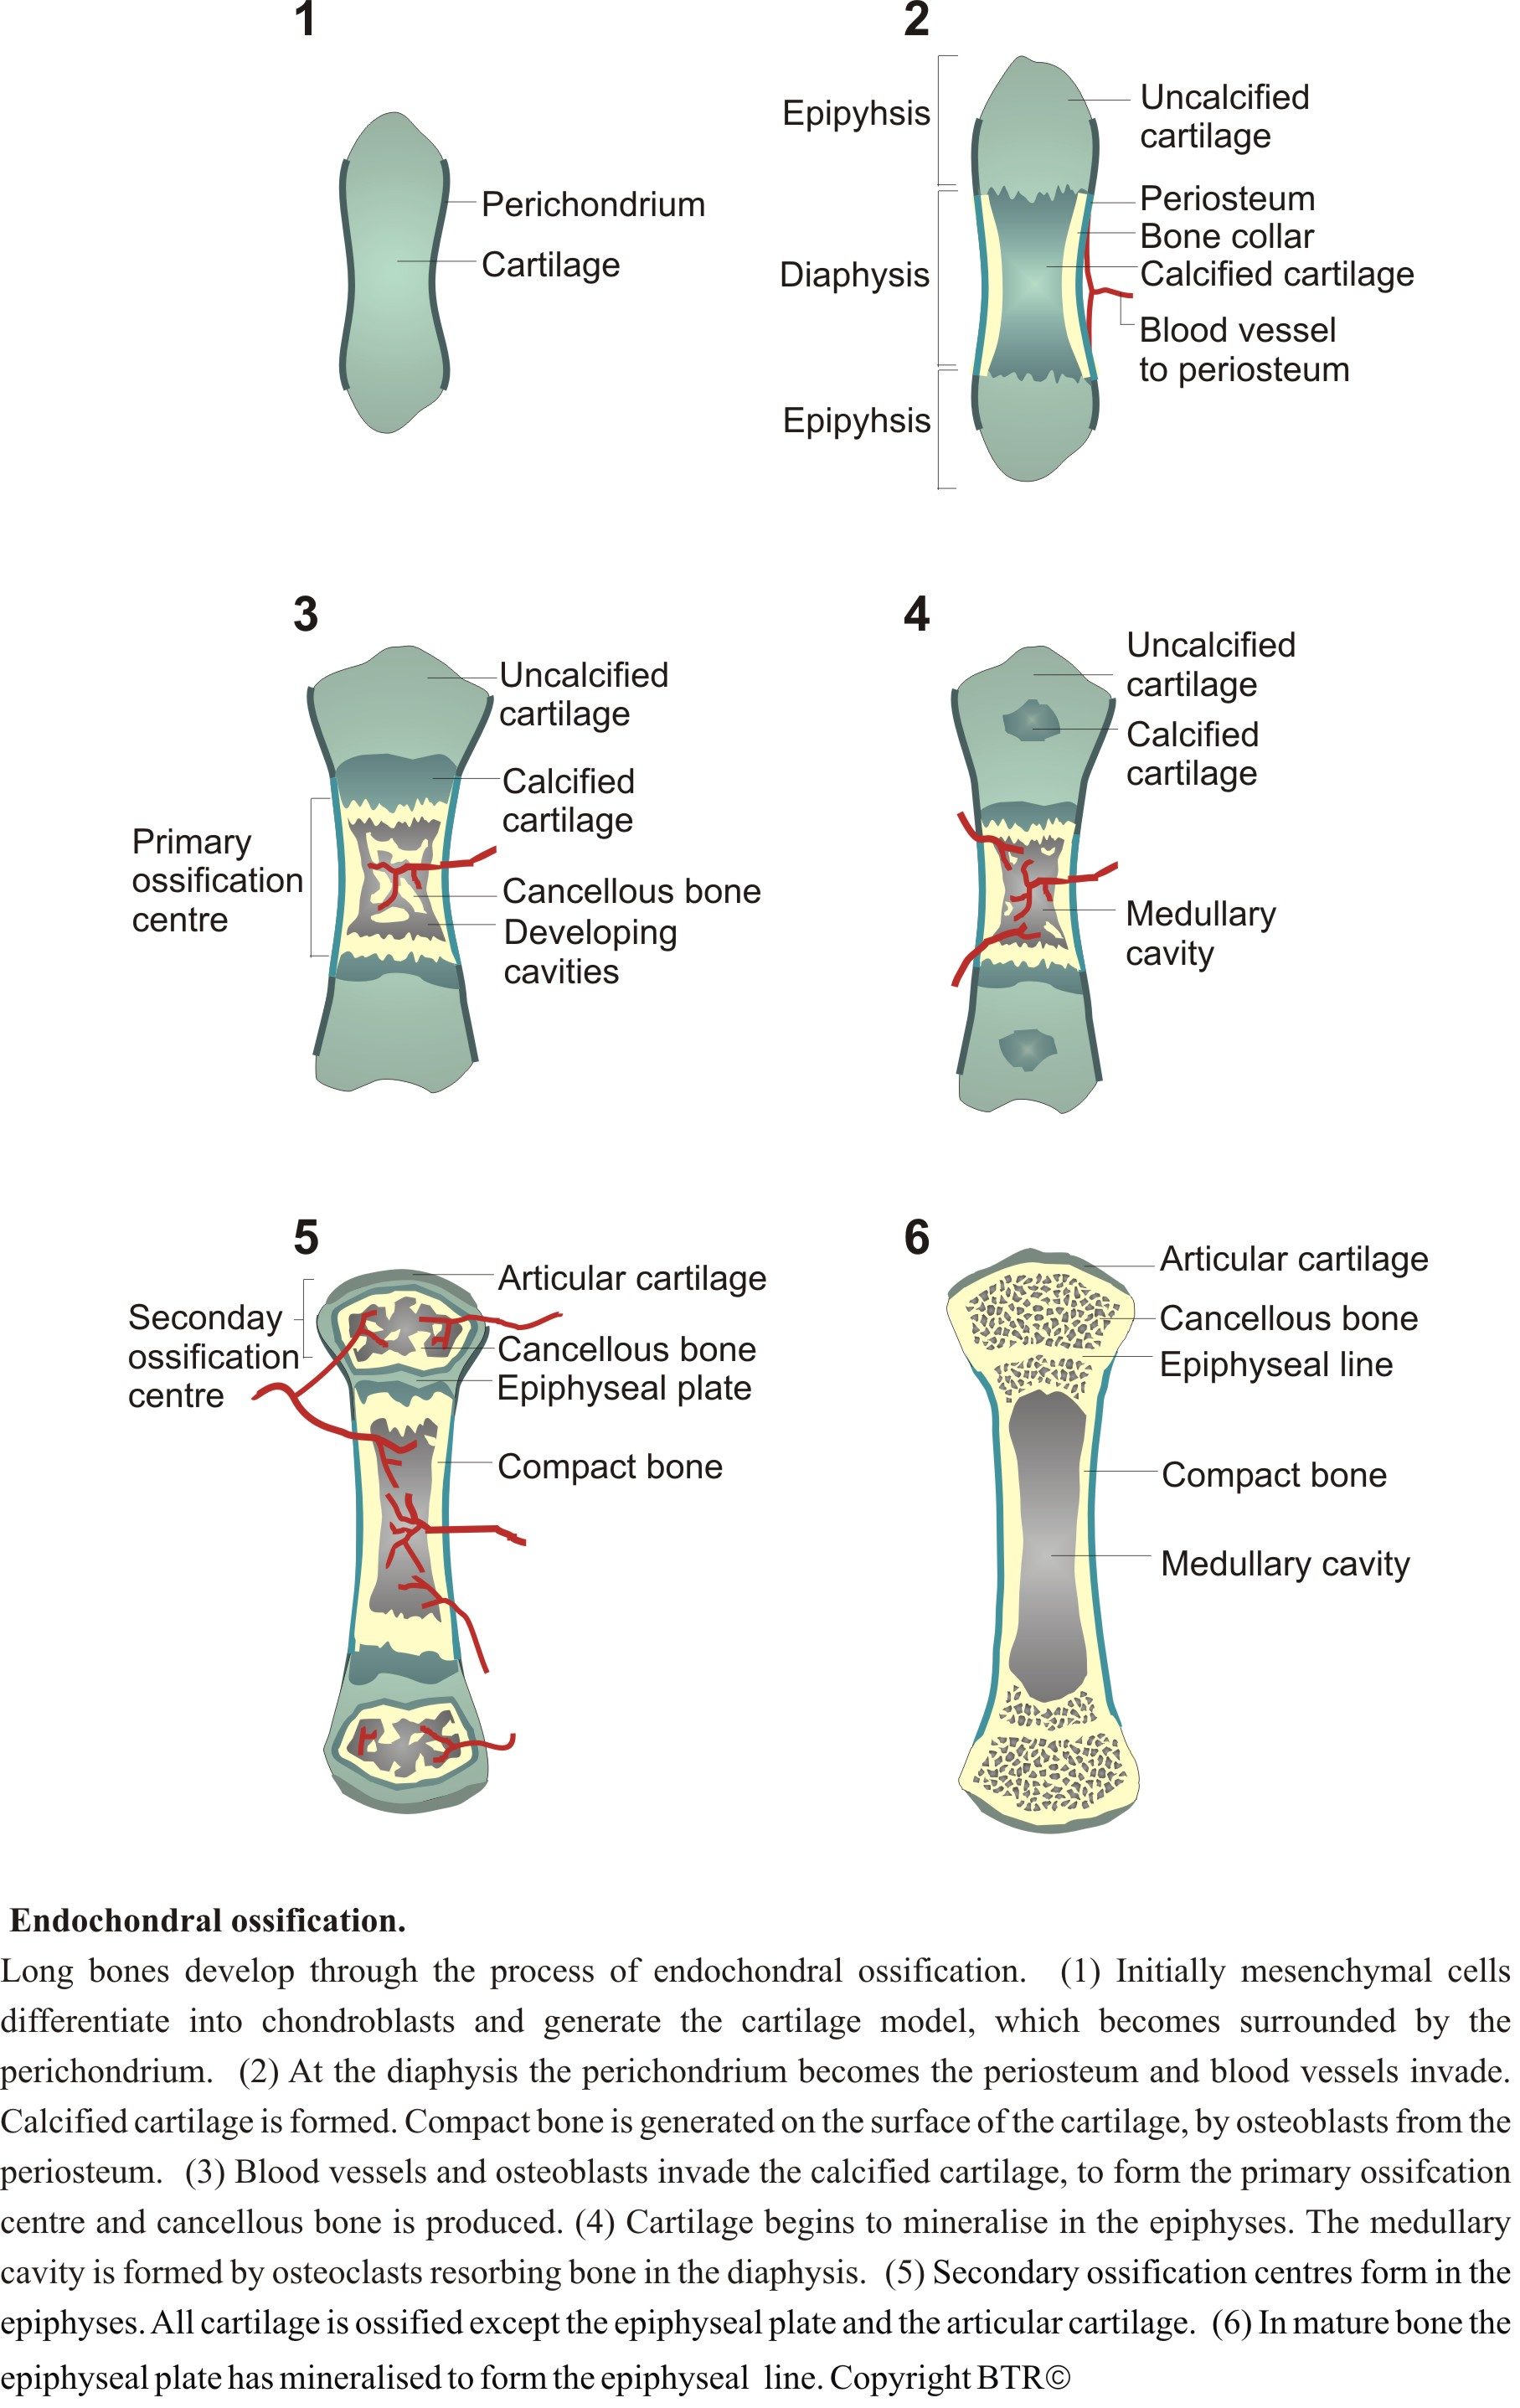 endochondrial ossification